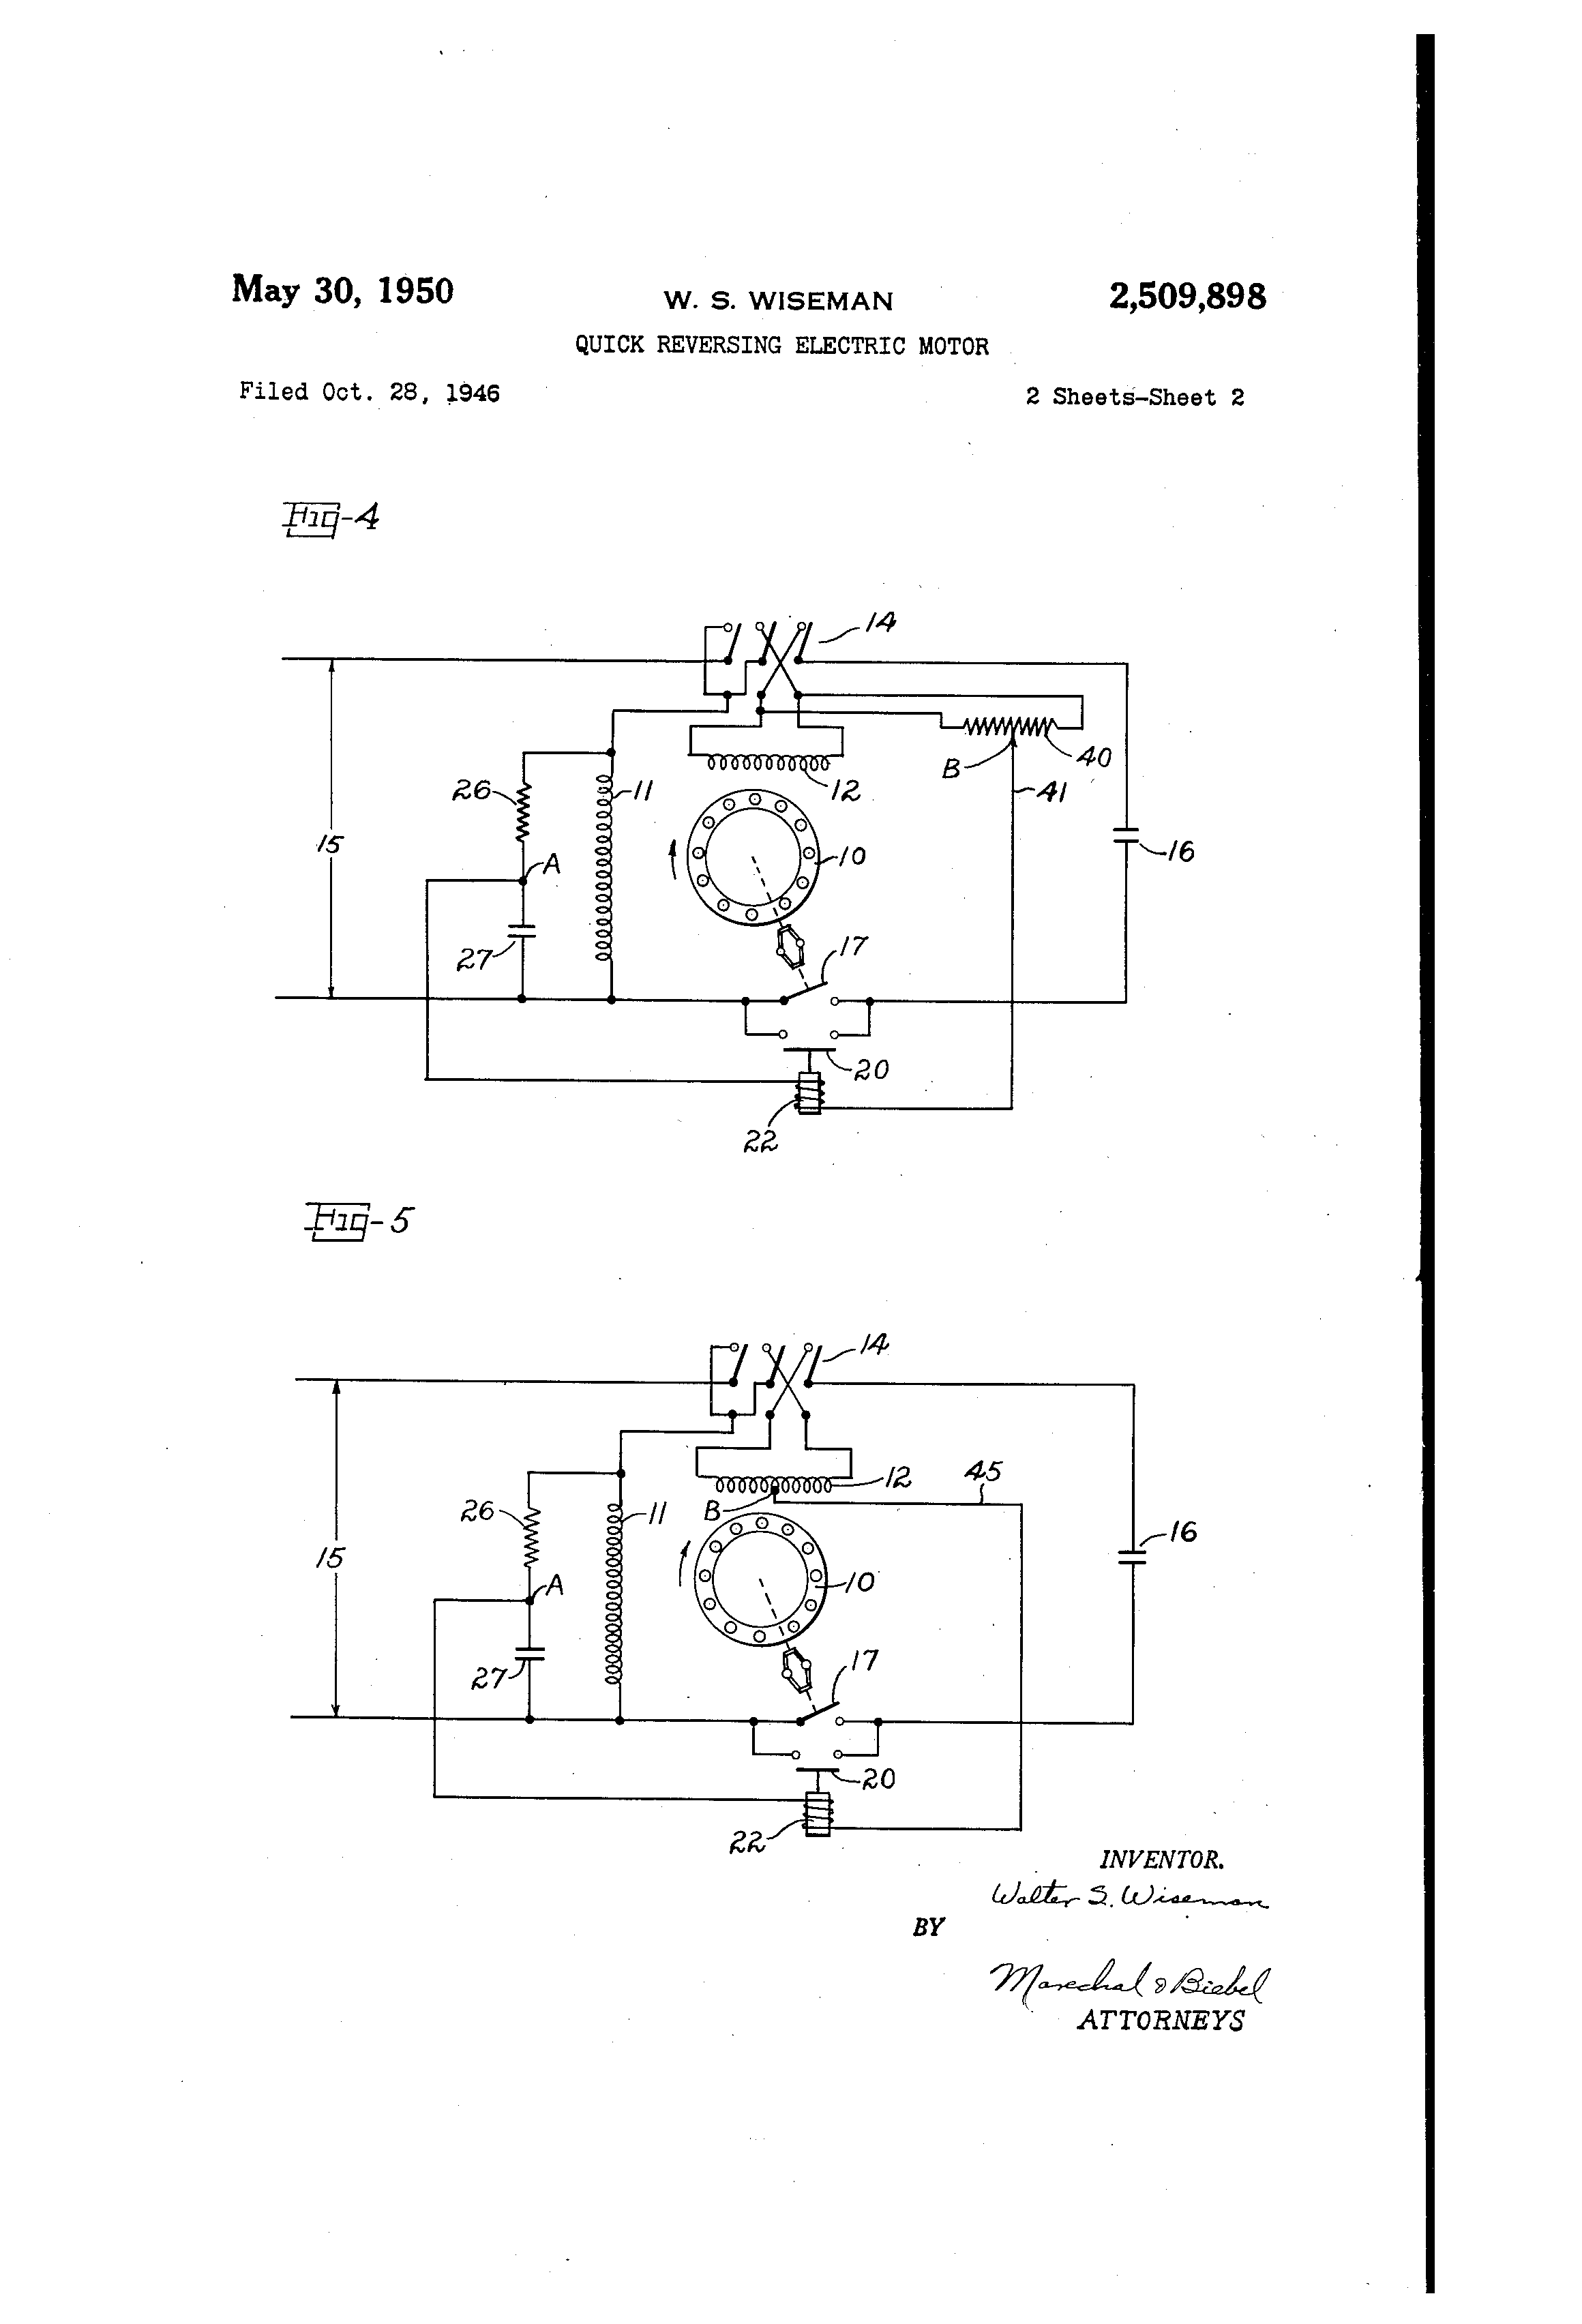 US2509898 1?resize\=665%2C977\&ssl\=1 dayton drum switch wiring diagram dayton wiring diagrams collection square d drum switch wiring diagram at bayanpartner.co